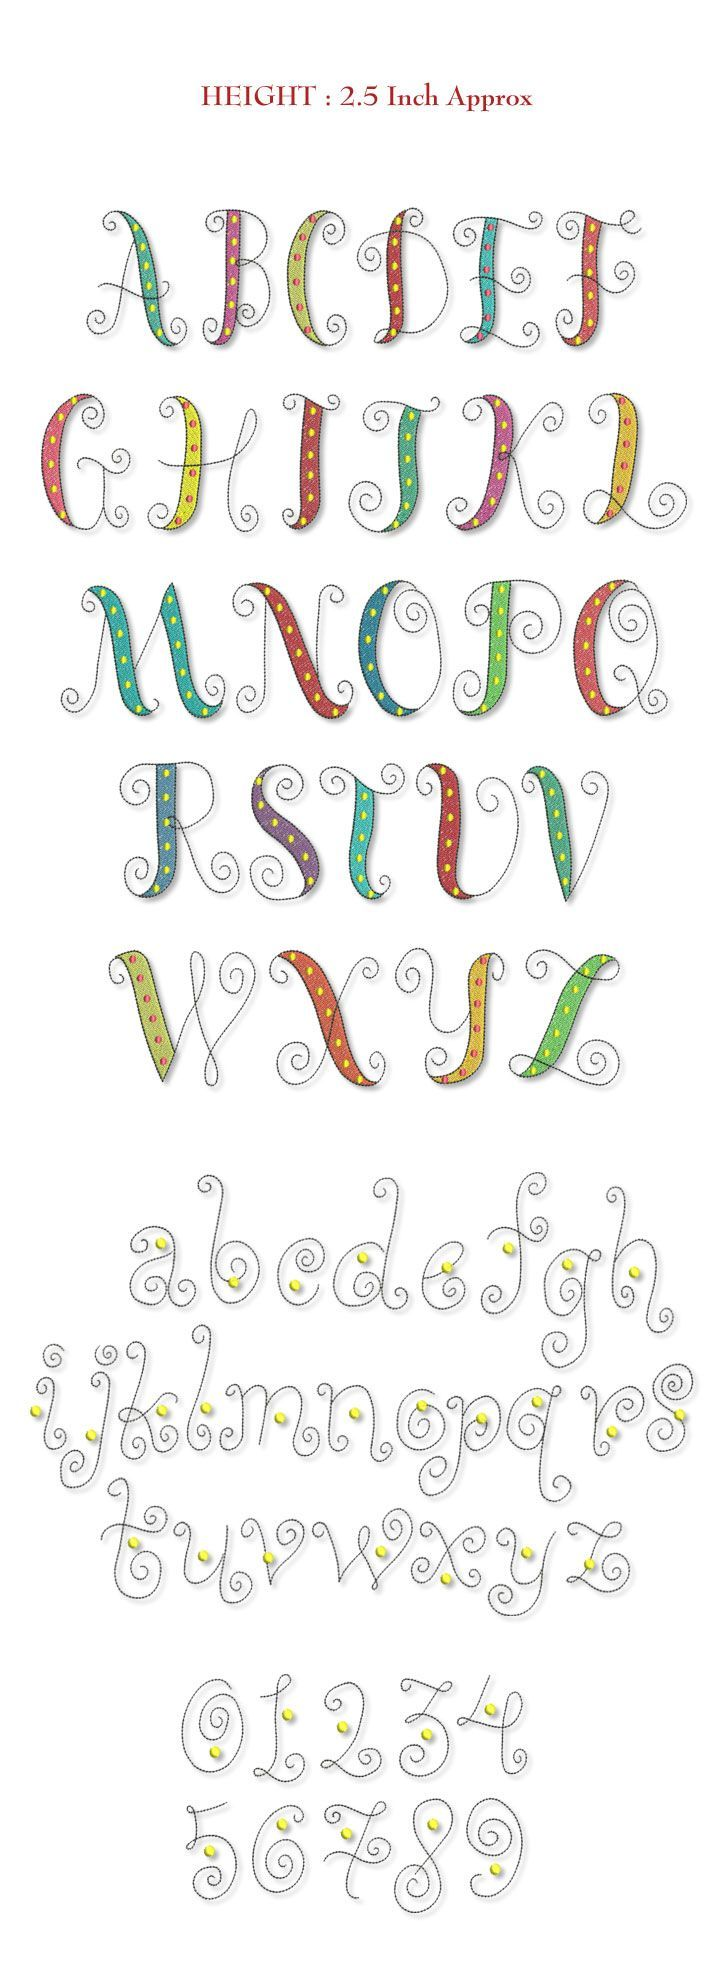 Dead Link But Cute Font Single Letter Smartstitches Embroidery Designs Whimsy